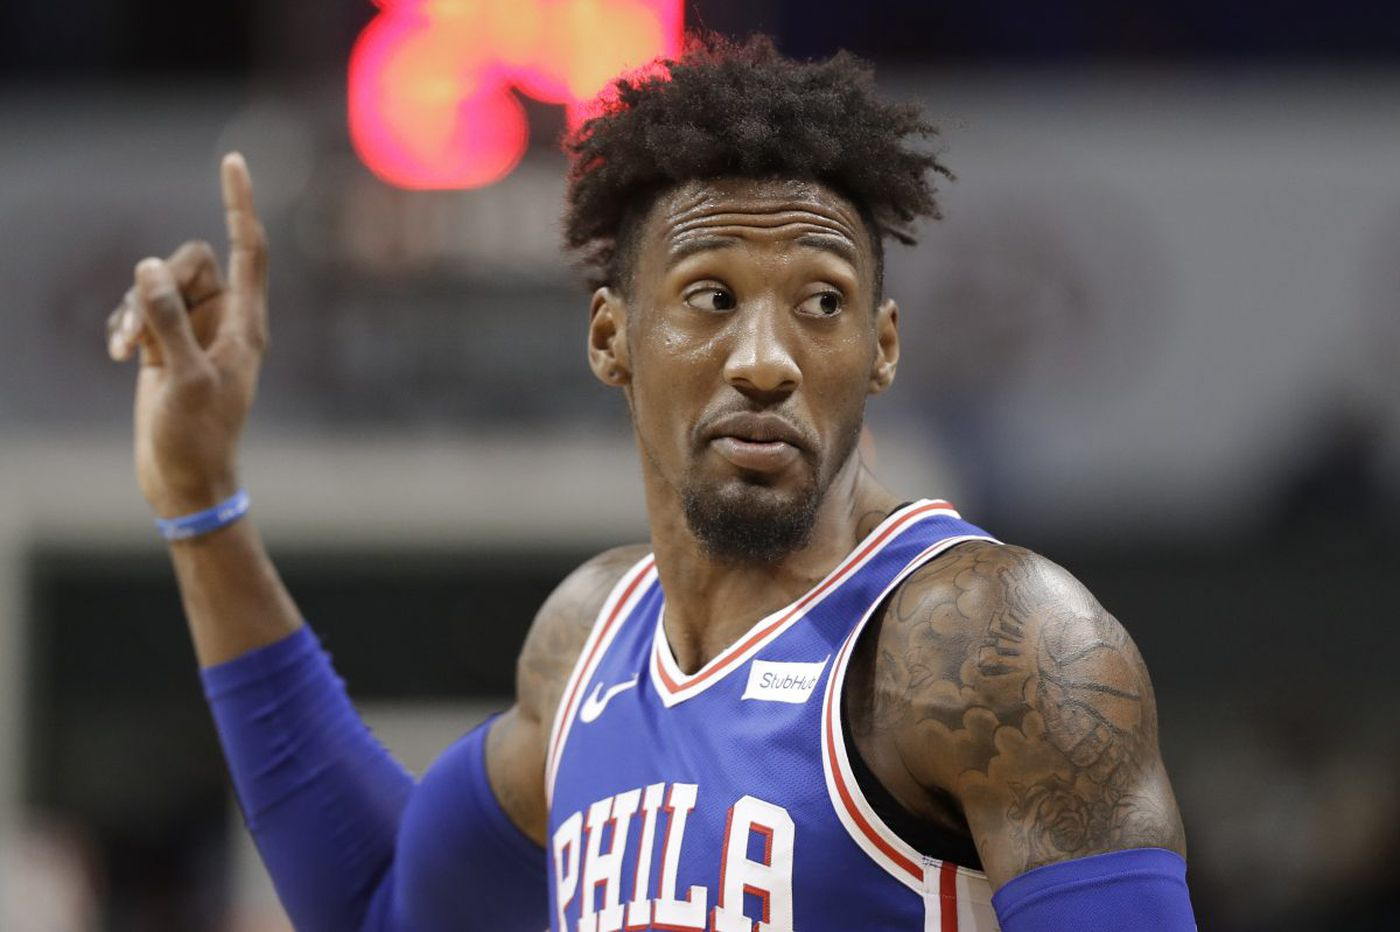 Sixers-Hornets: Robert Covington explodes, Ersan Ilyasova takes another charge and other quick observations from a 128-114 win